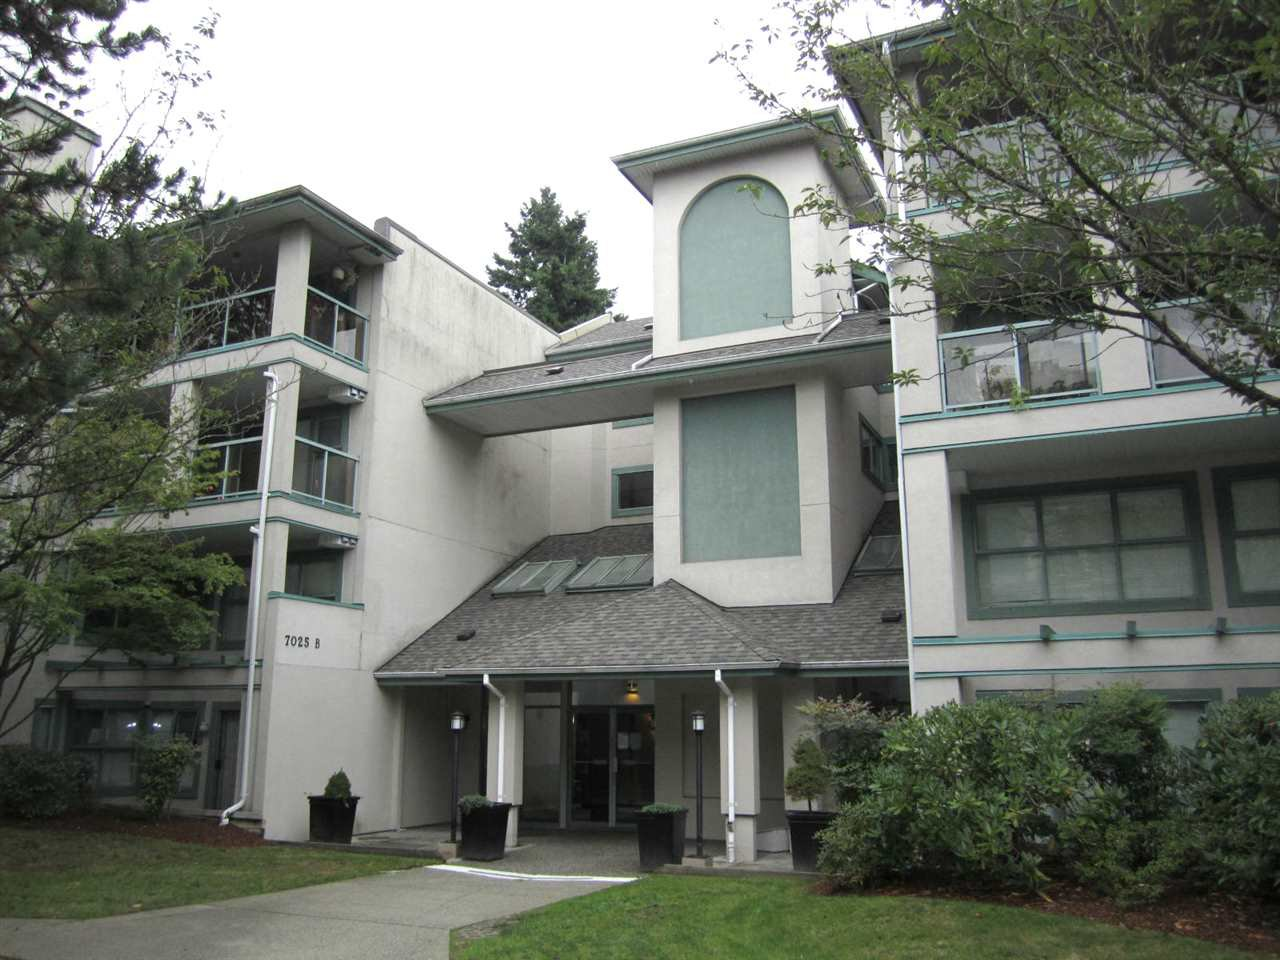 Main Photo: 205B - 7025 Stride Ave in Burnaby: Edmonds BE Condo for sale (Burnaby East)  : MLS®# R2407329